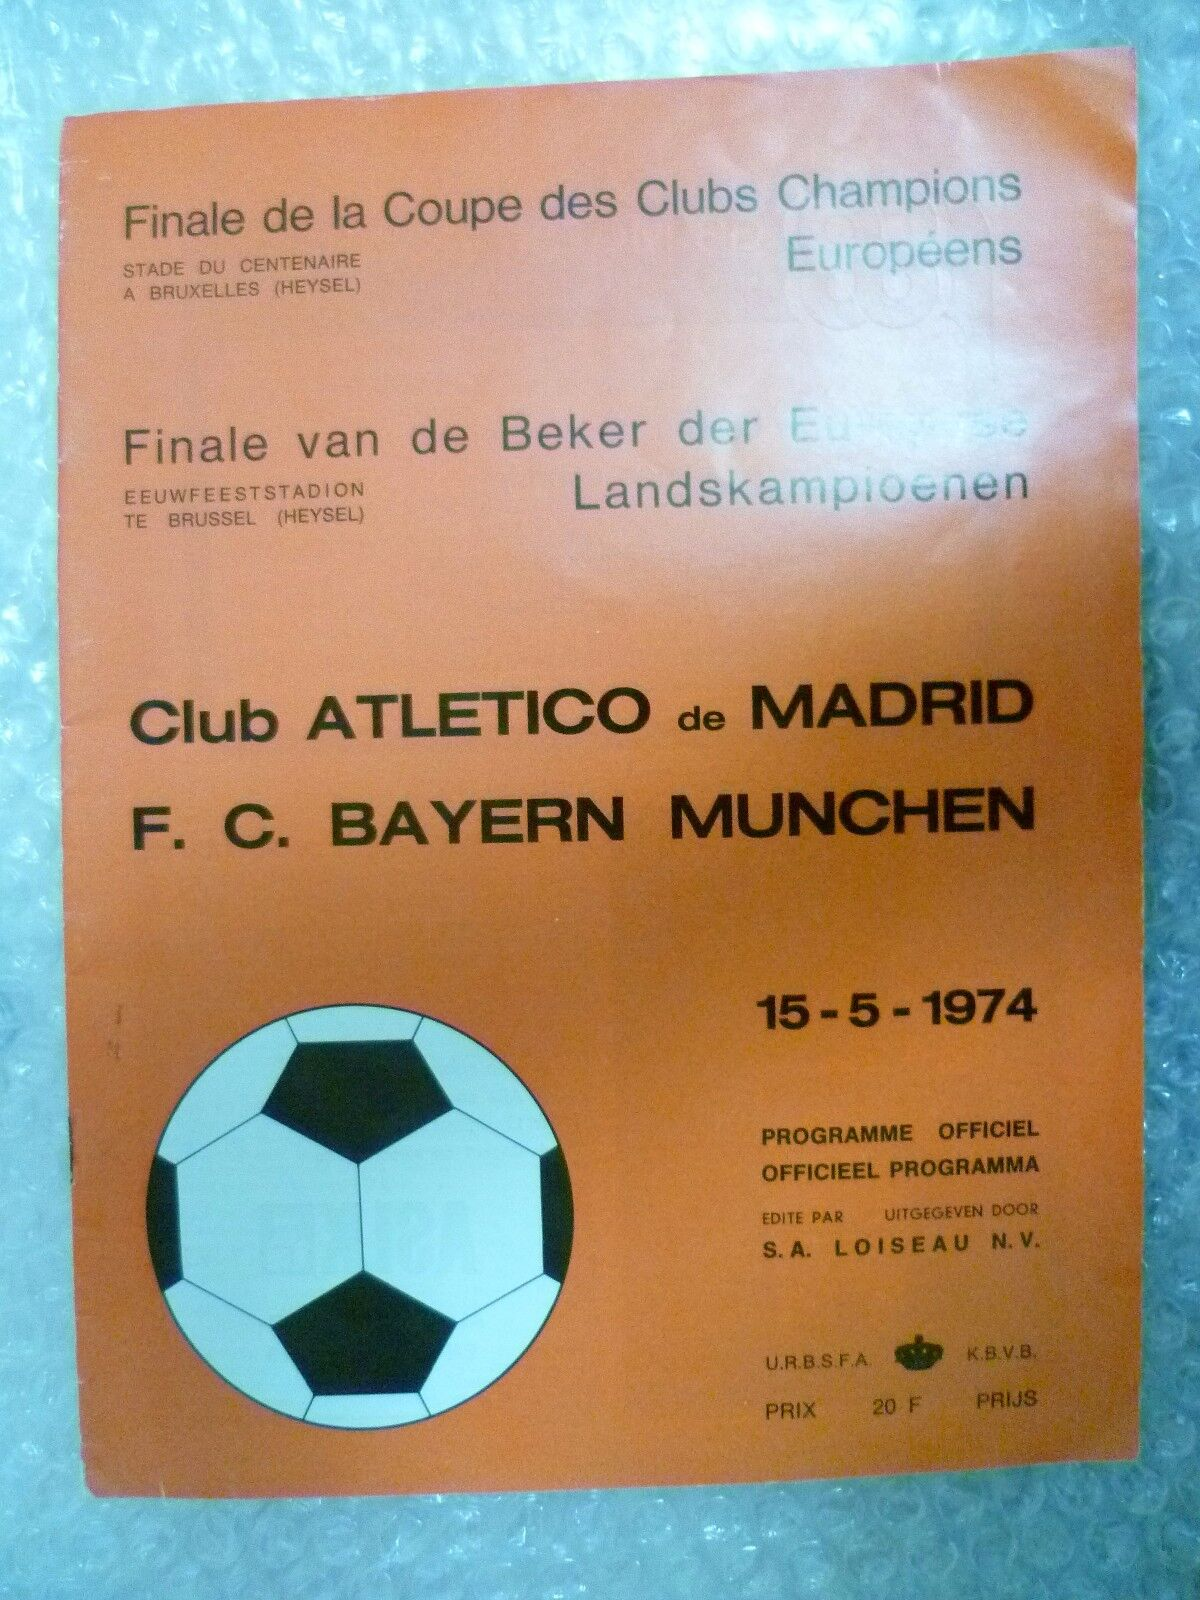 1974 European Cup Final Programme ATLETICO DE MADRID v FC BAYERN MUNCHEN, 15 May